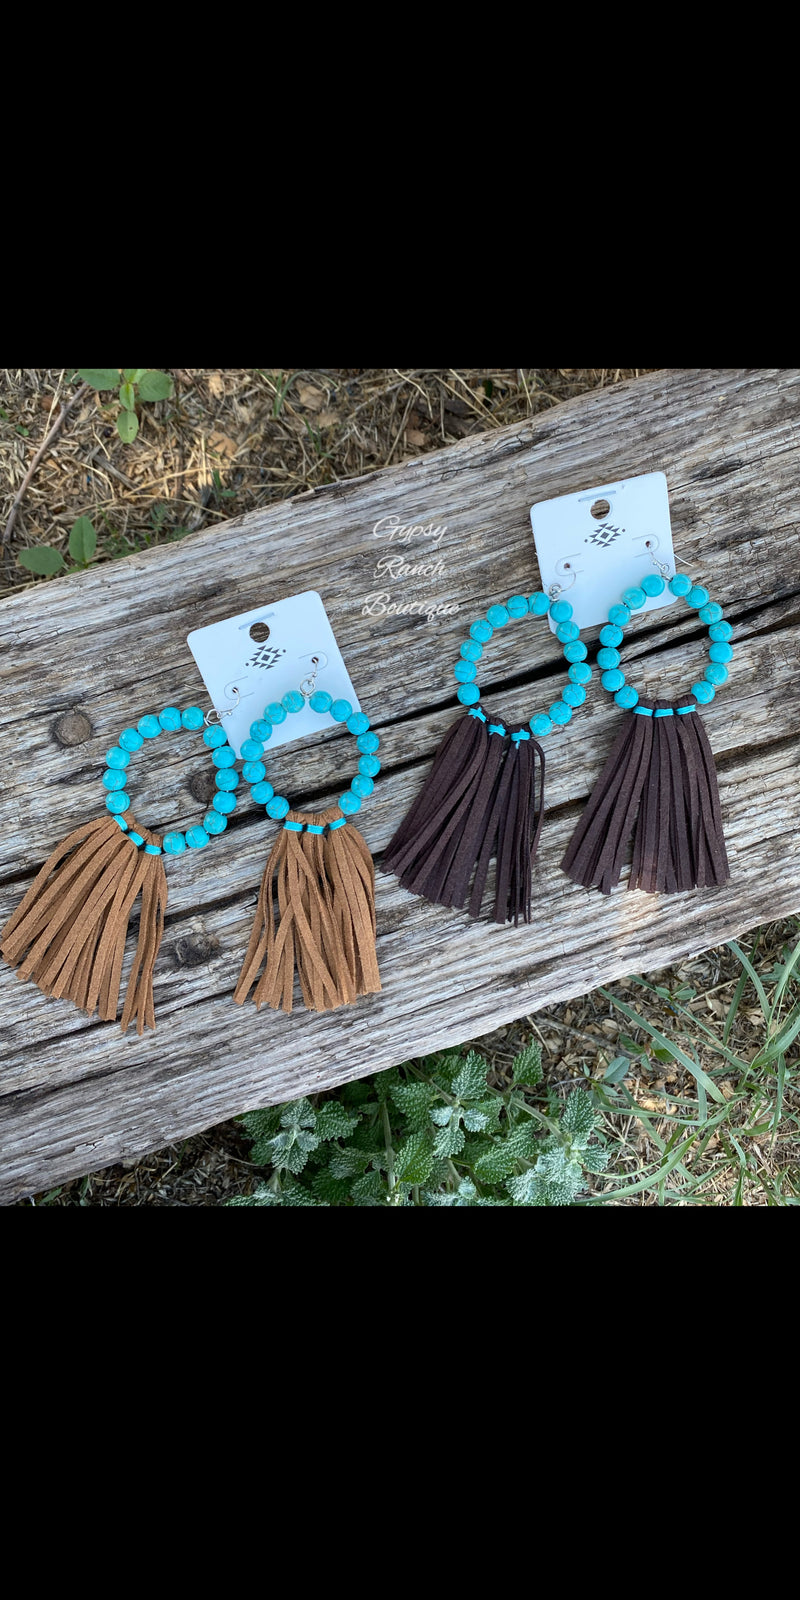 Windham Turquoise Tassel Earrings - 2 colors